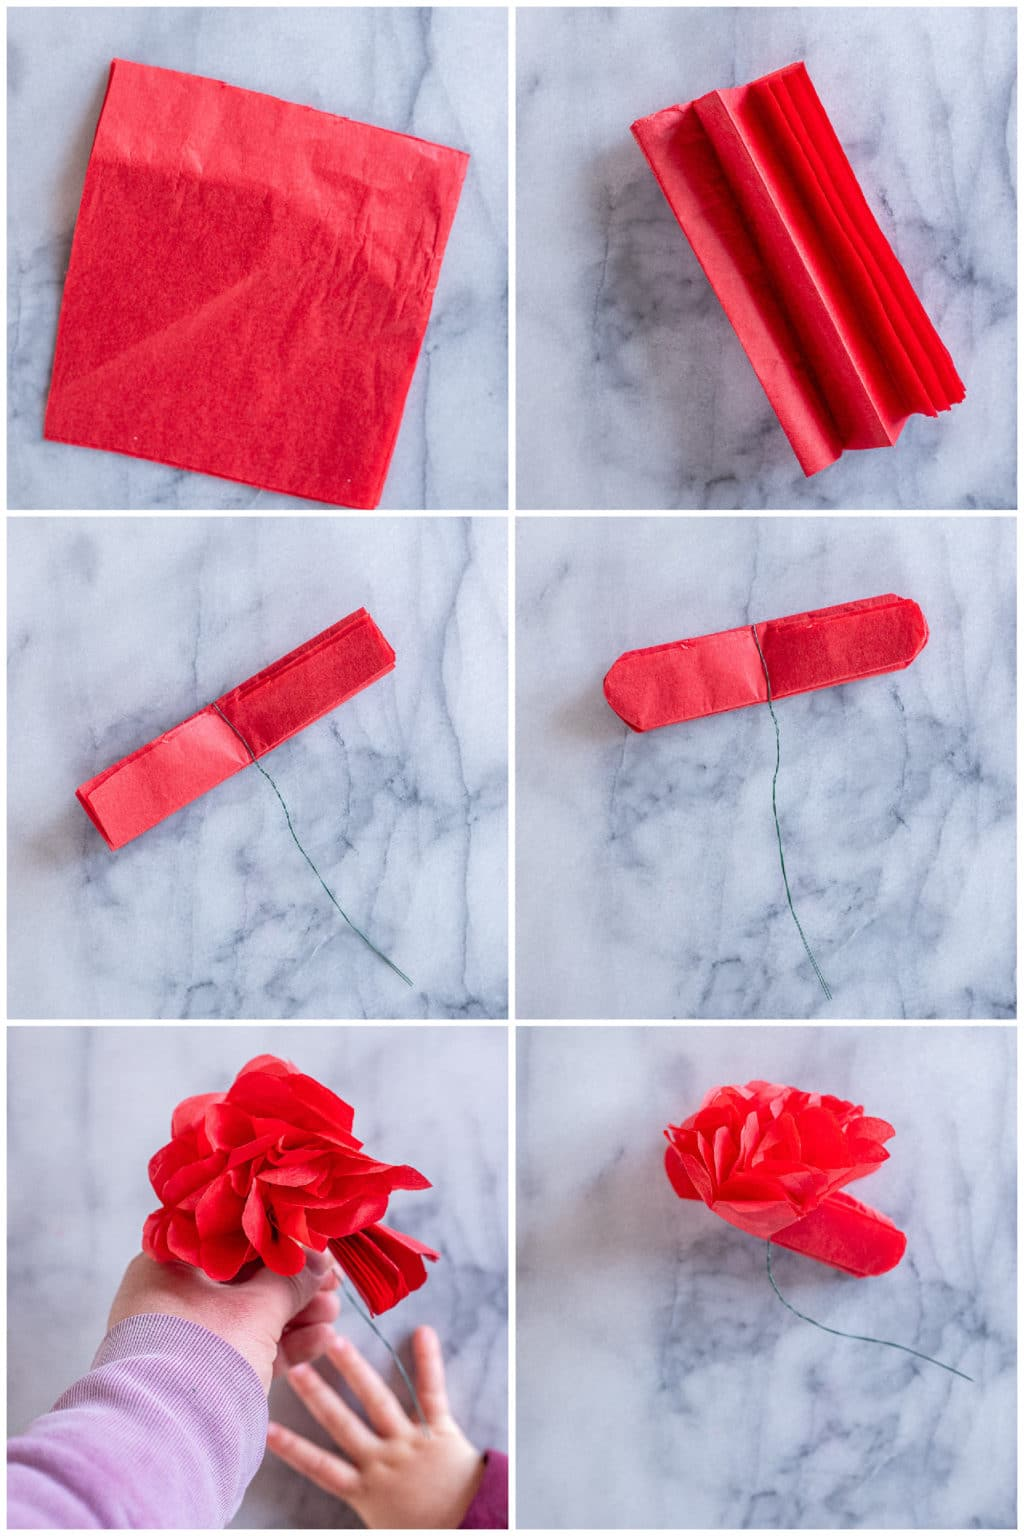 step by step directions on how to make tissue paper roses